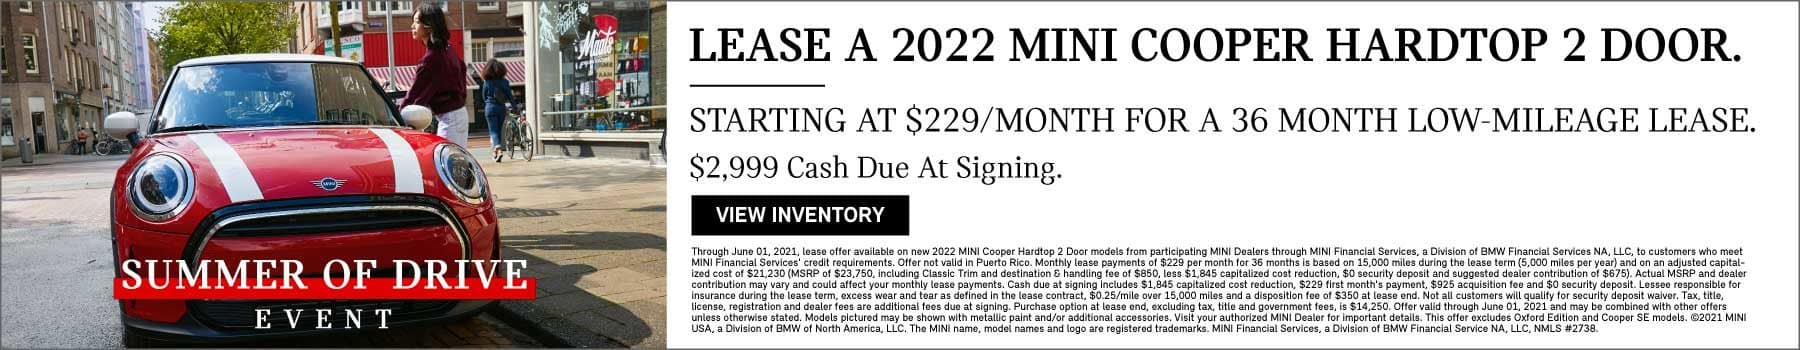 Lease a 2022 MINI Cooper Hardtop 2 Door. Starting at $229 per month for a 36 month low-mileage lease. $2999 cash due at signing. Click to view inventory. Offer ends June 1st, 2021.